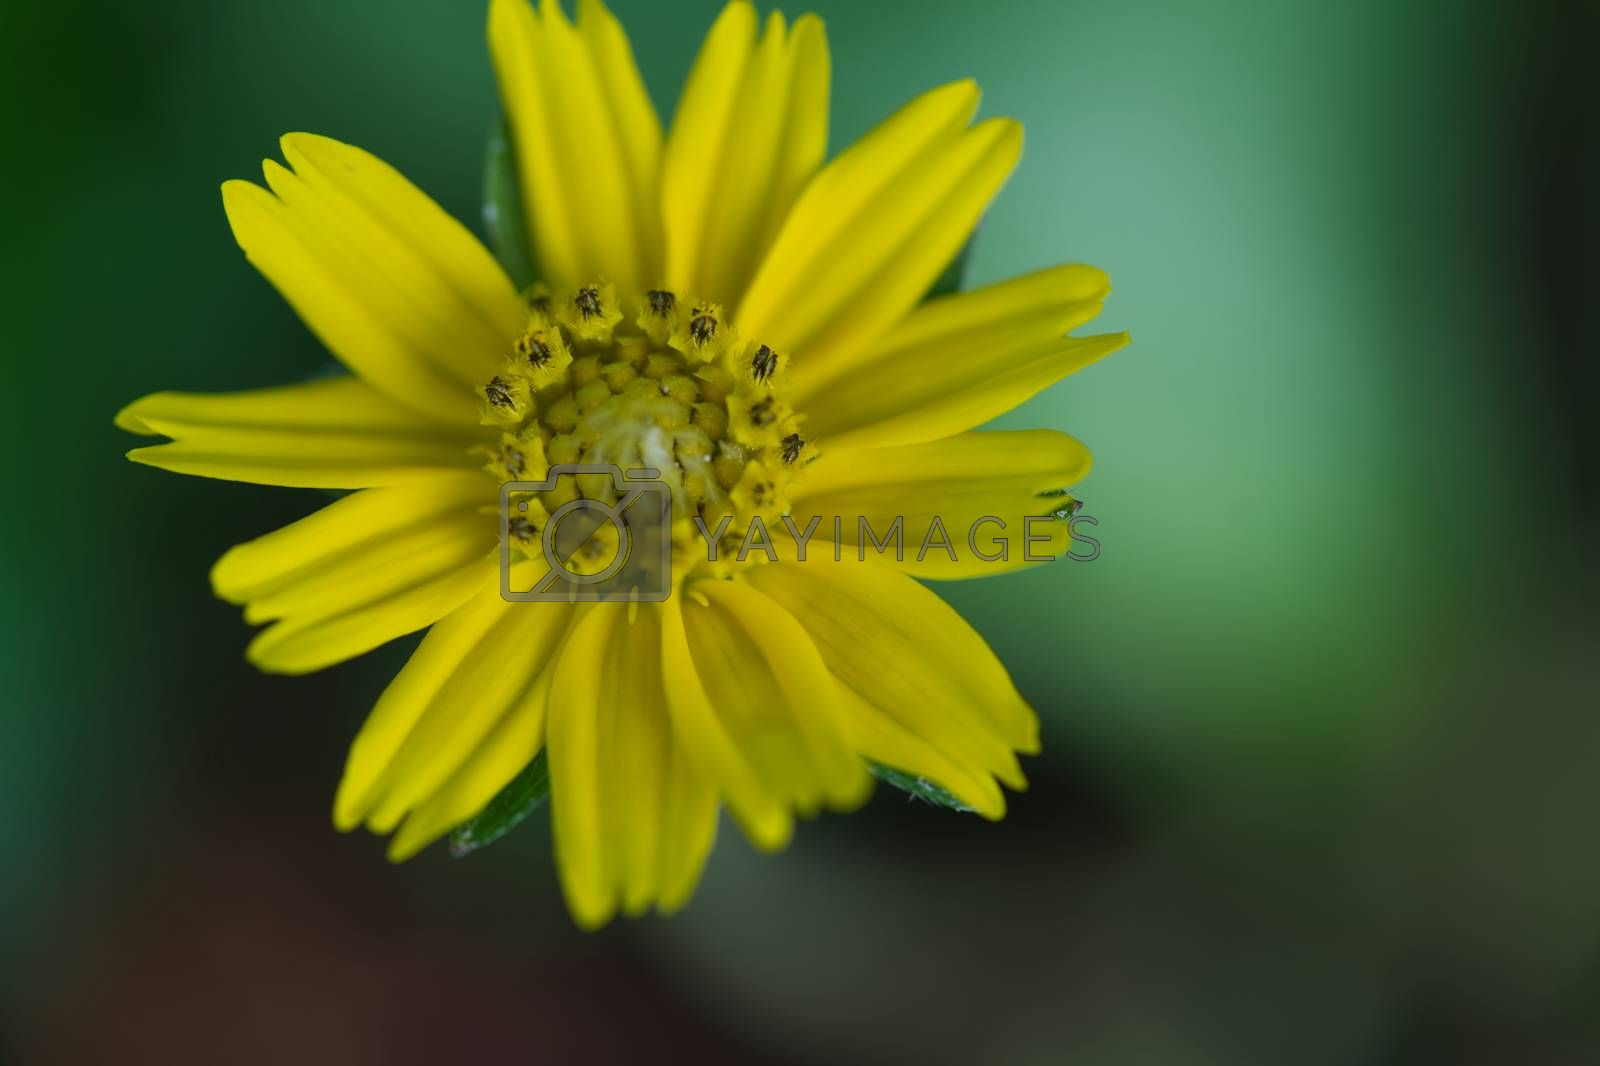 Yellow flowers, black background, green, beautiful petals, bright, cheerful, lively The area for text on the right, copy area, focus on pollen and background blur.